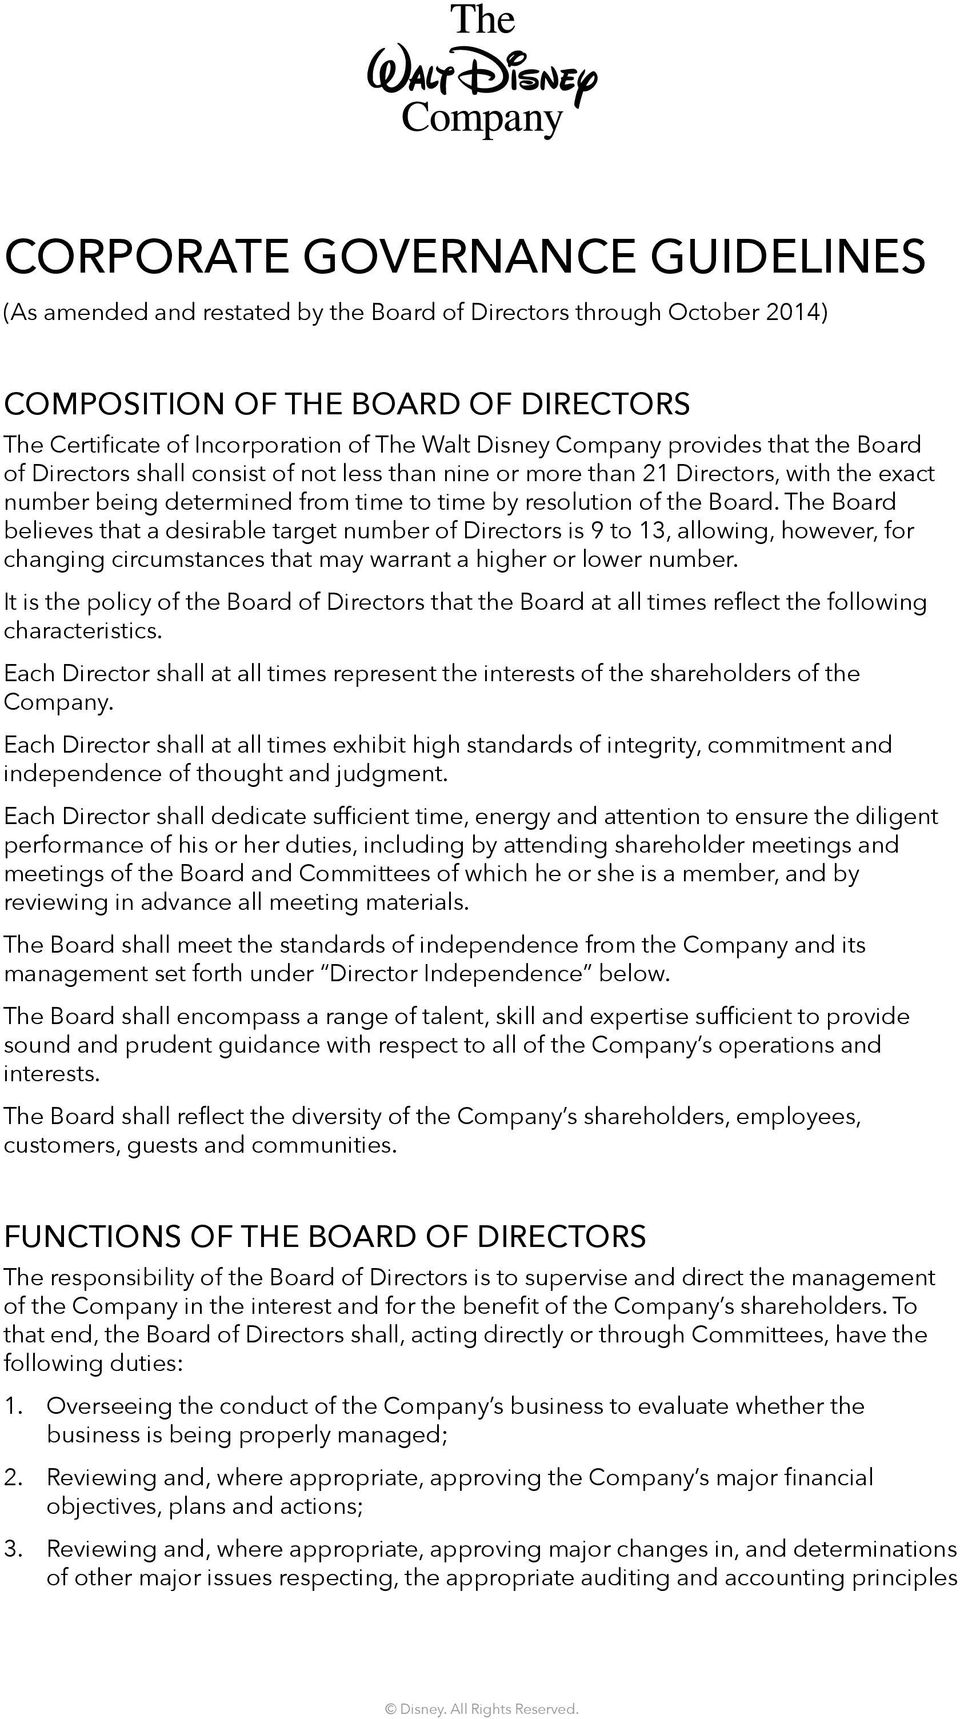 The Board believes that a desirable target number of Directors is 9 to 13, allowing, however, for changing circumstances that may warrant a higher or lower number.